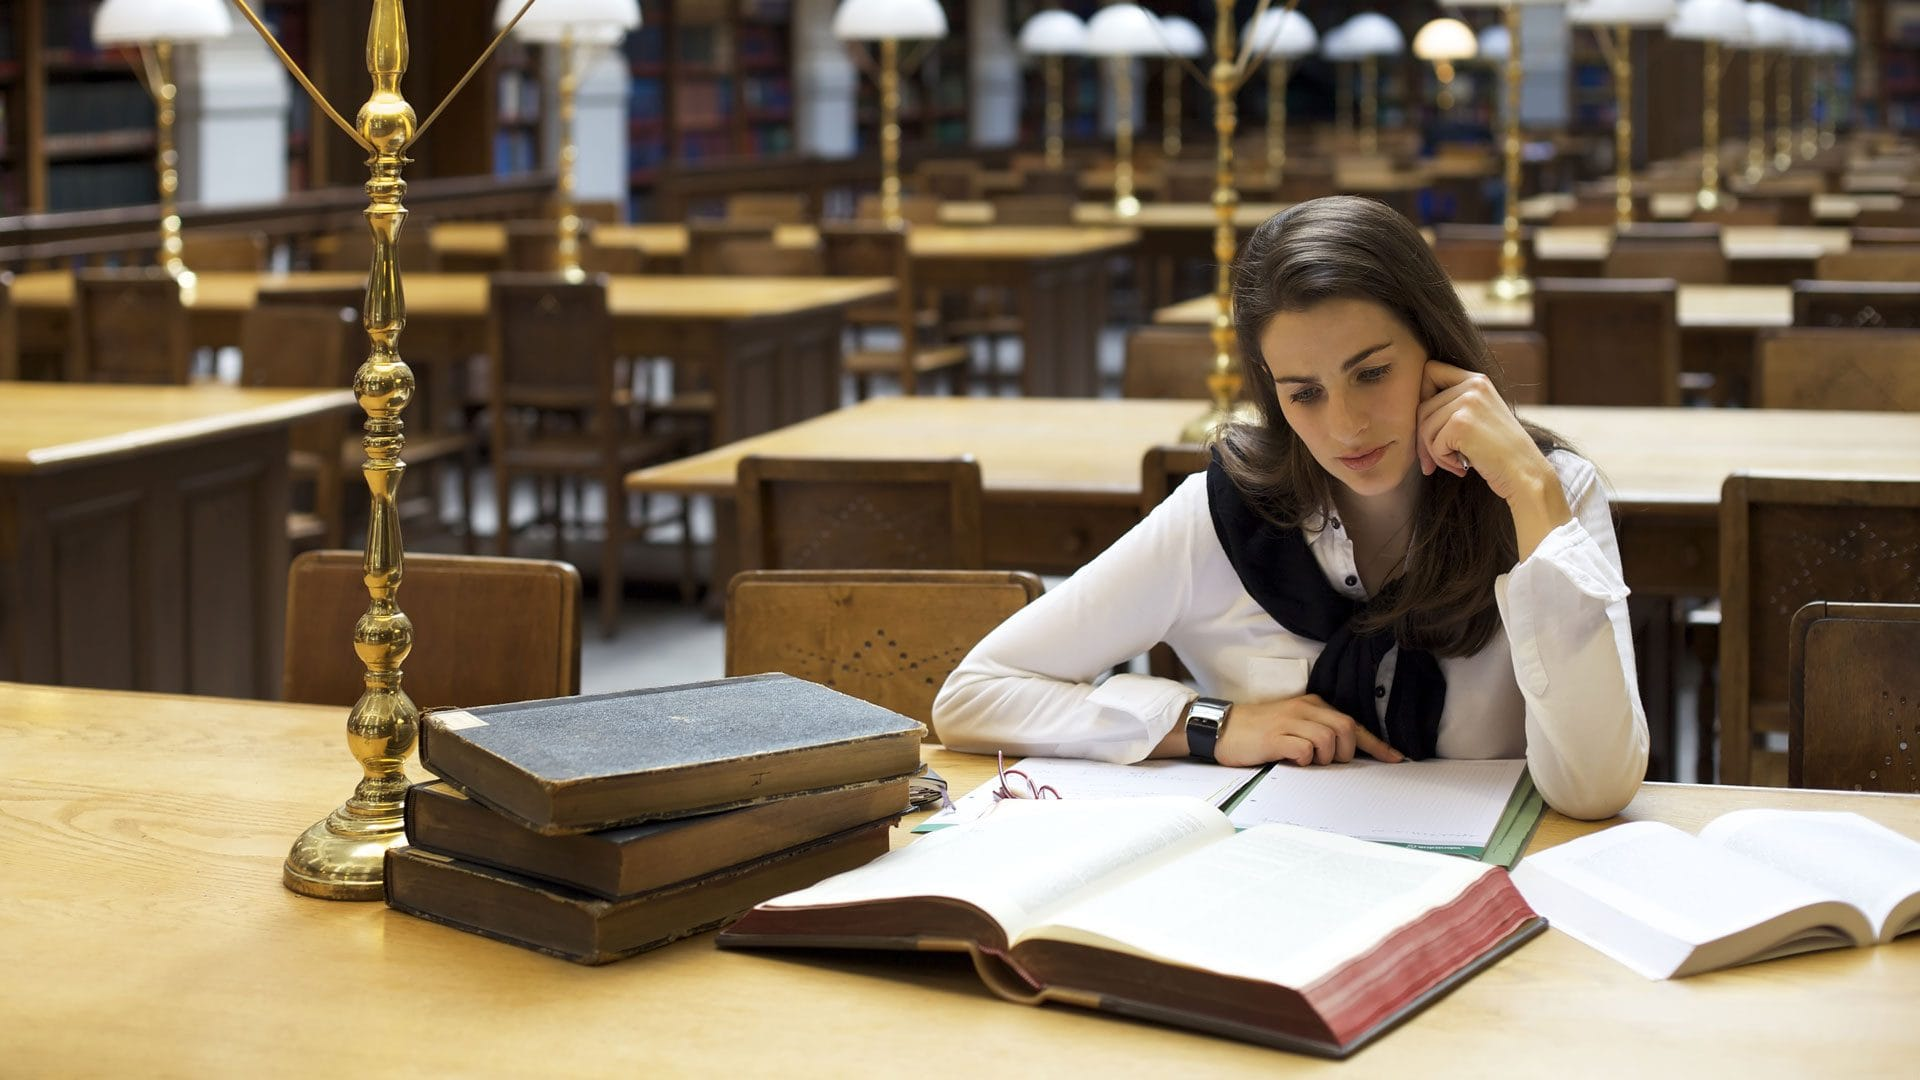 studying in library